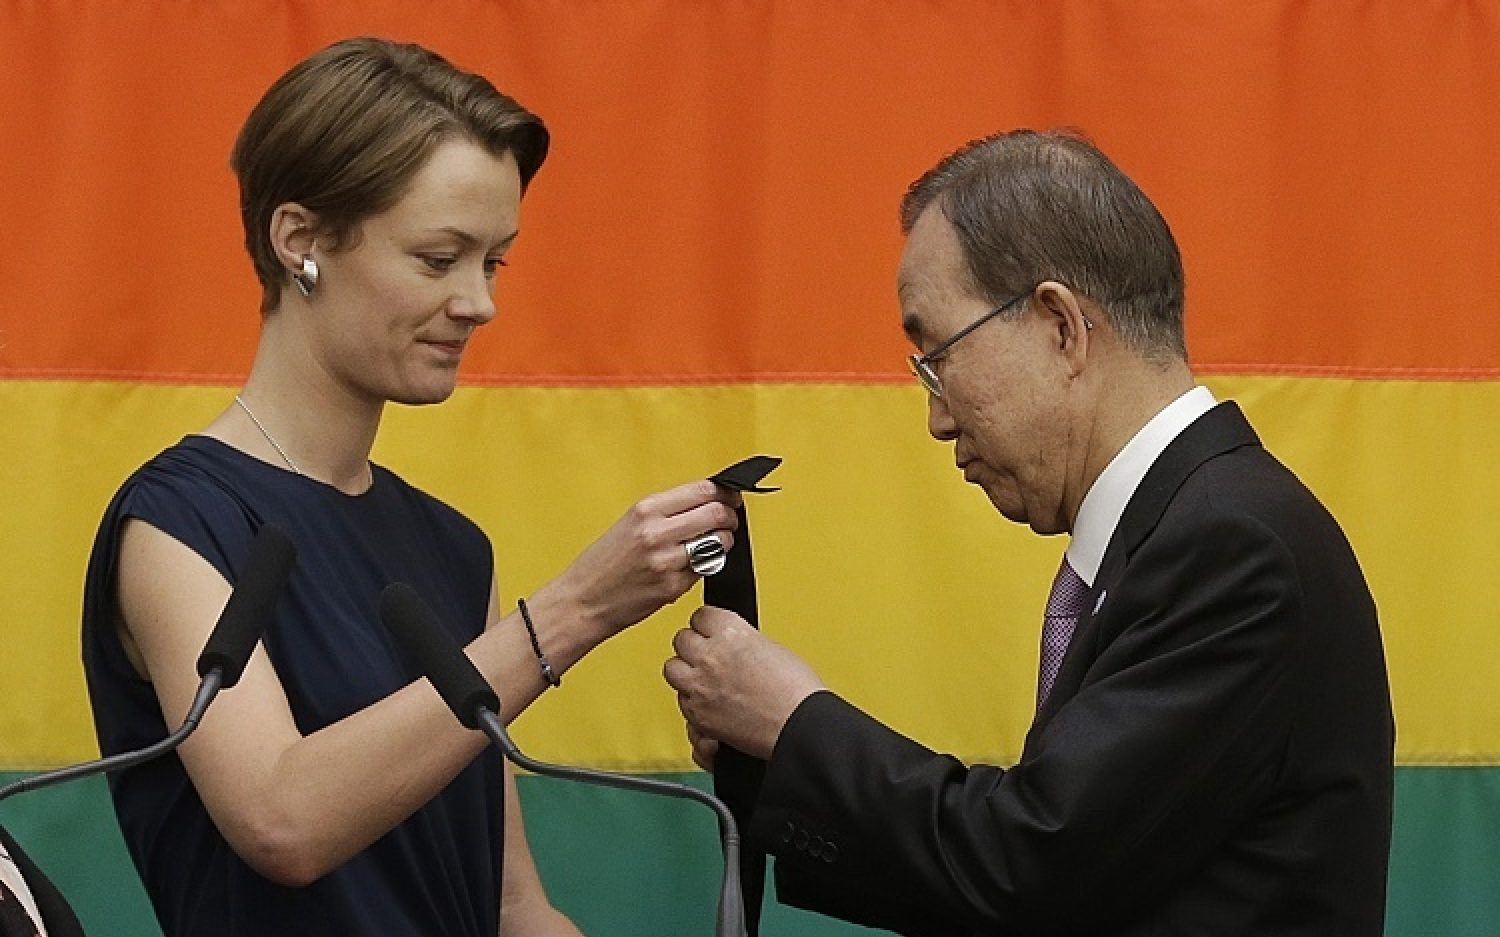 UN set to appoint global LGBT advocate